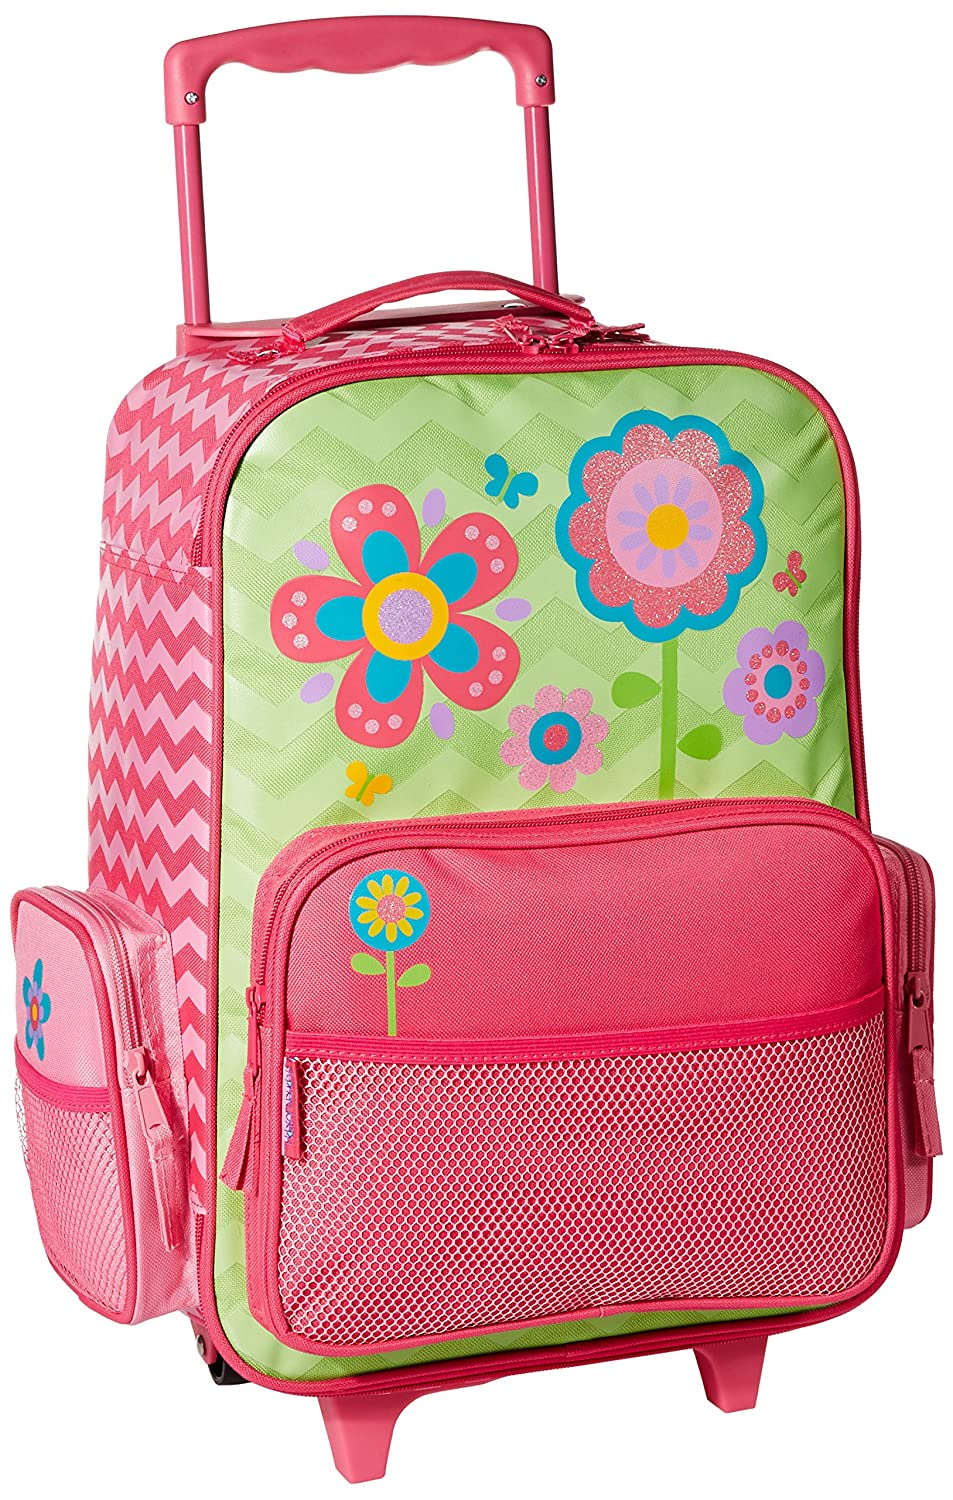 Stephen Joseph Little Girl's Classic Rolling Luggage, Accessory, Flower, No Size SJ-8001-45B